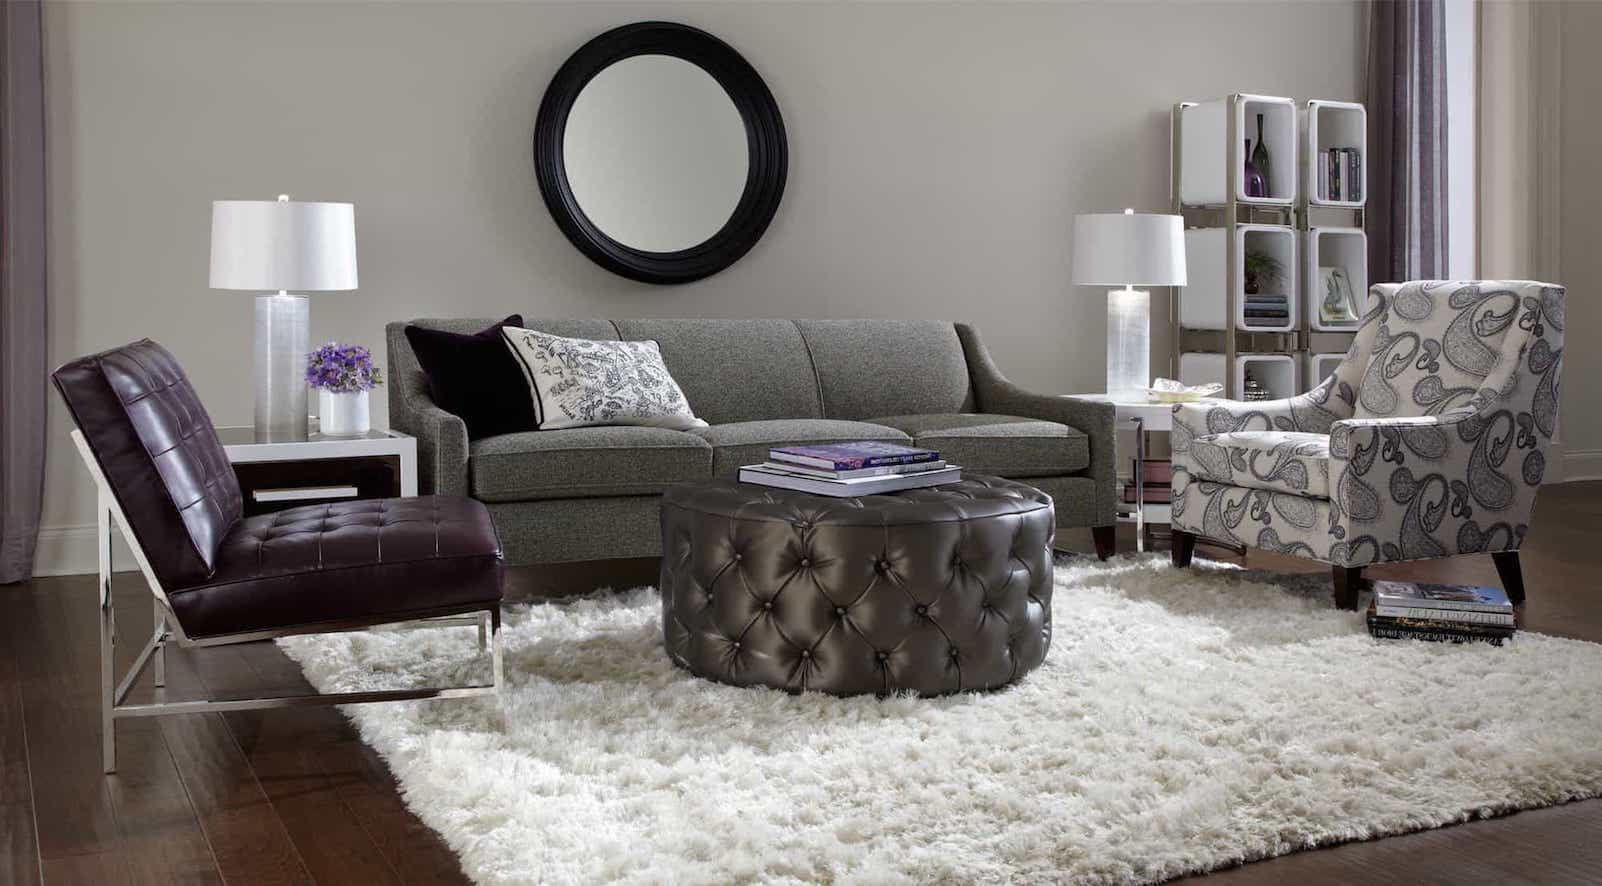 Modern Natural Furry White Shag Rugs For Living Room Decor (Image 9 of 15)